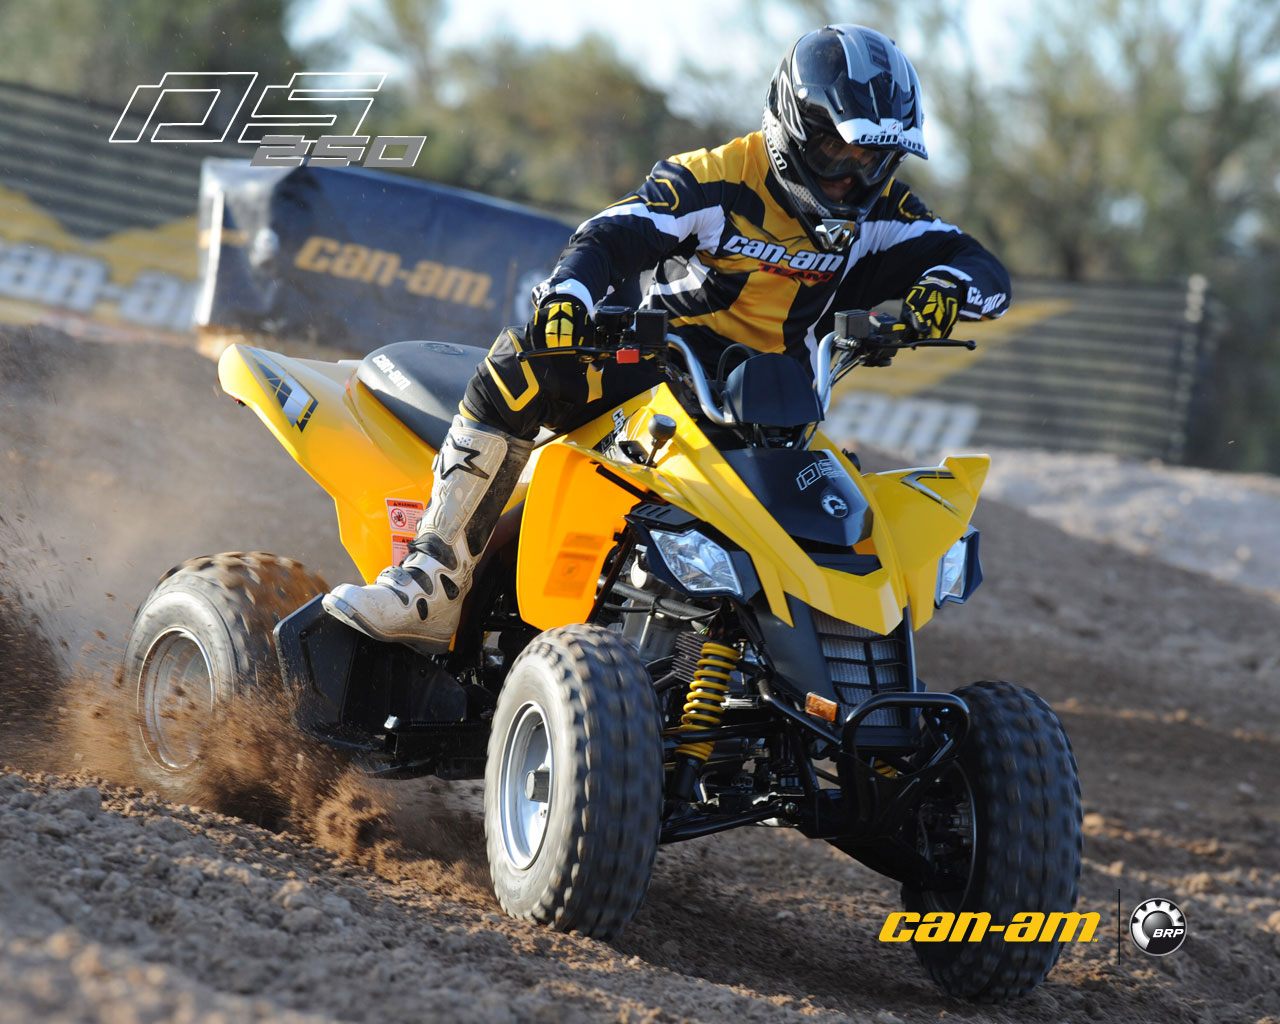 can-am ds 250-pic. 1